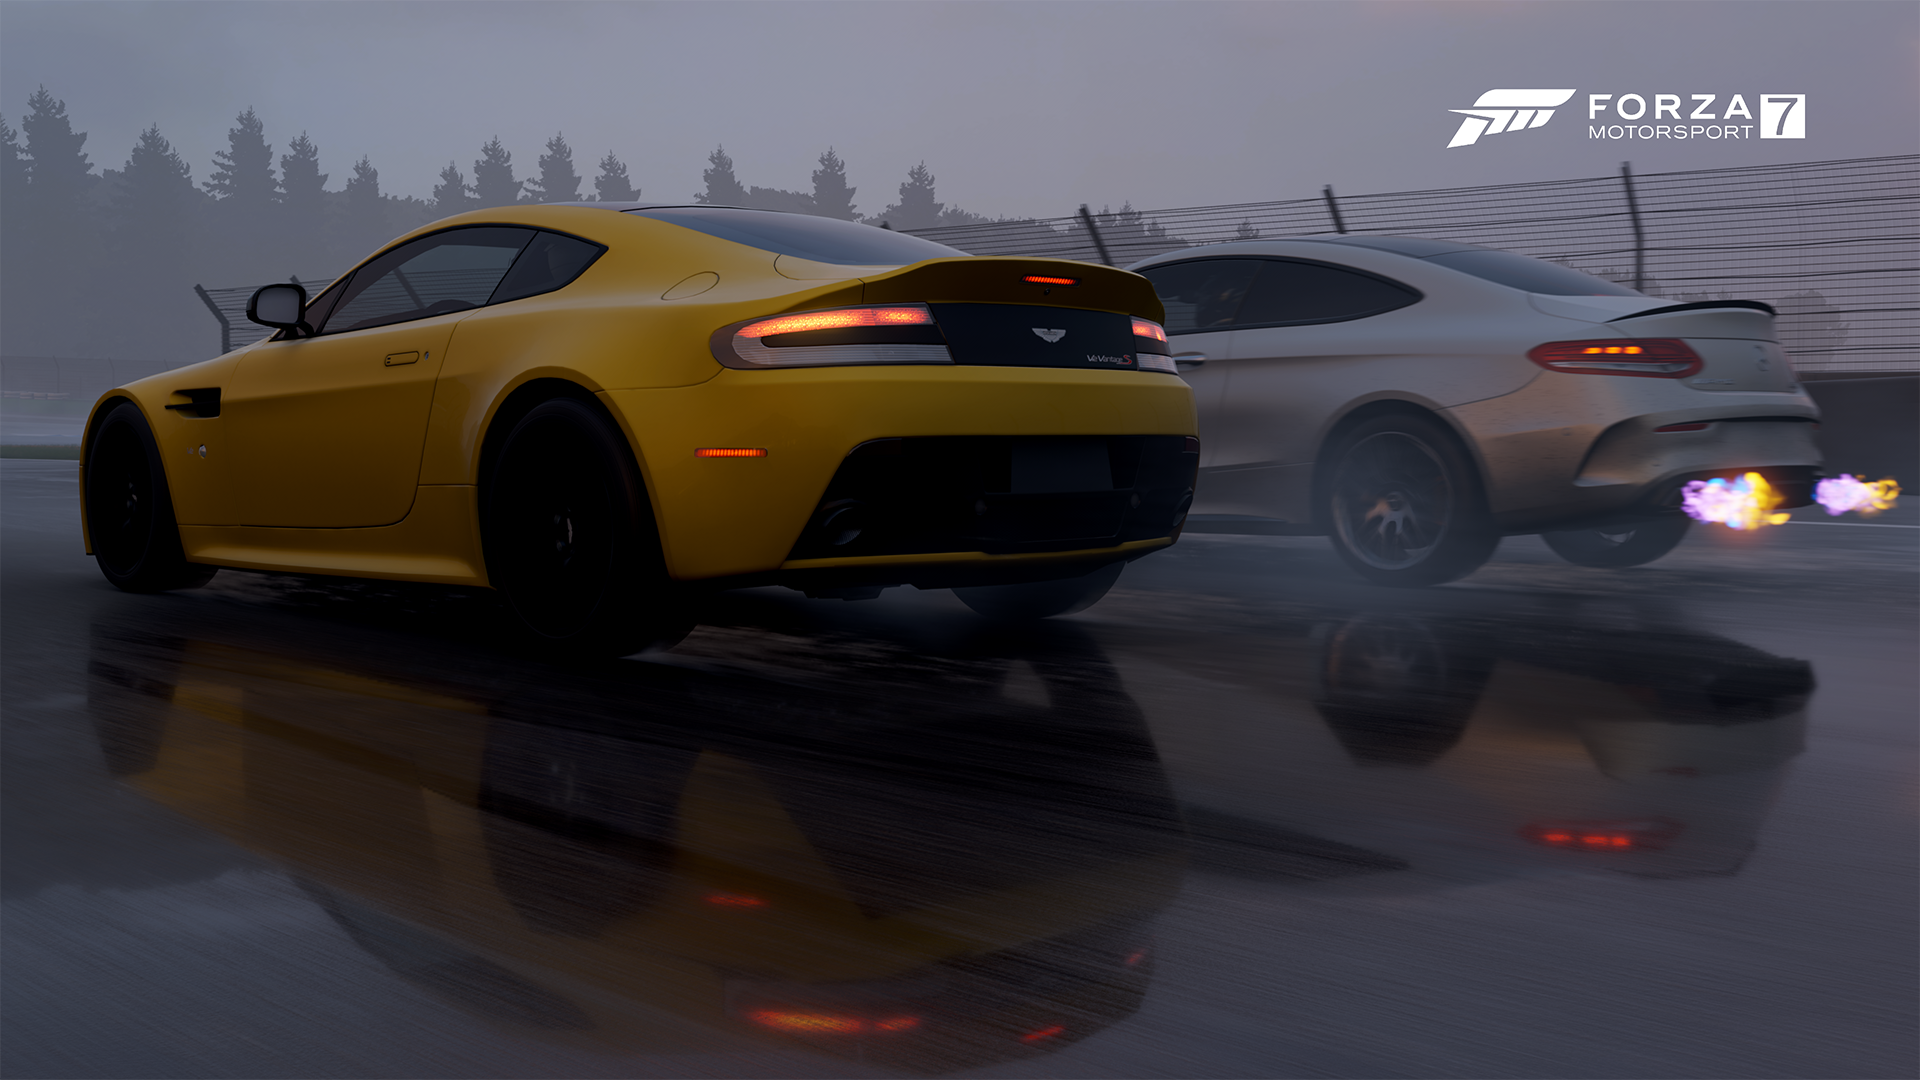 Forza Motorsport 7 Looks Stunning In These 8K Downsampled Screenshots